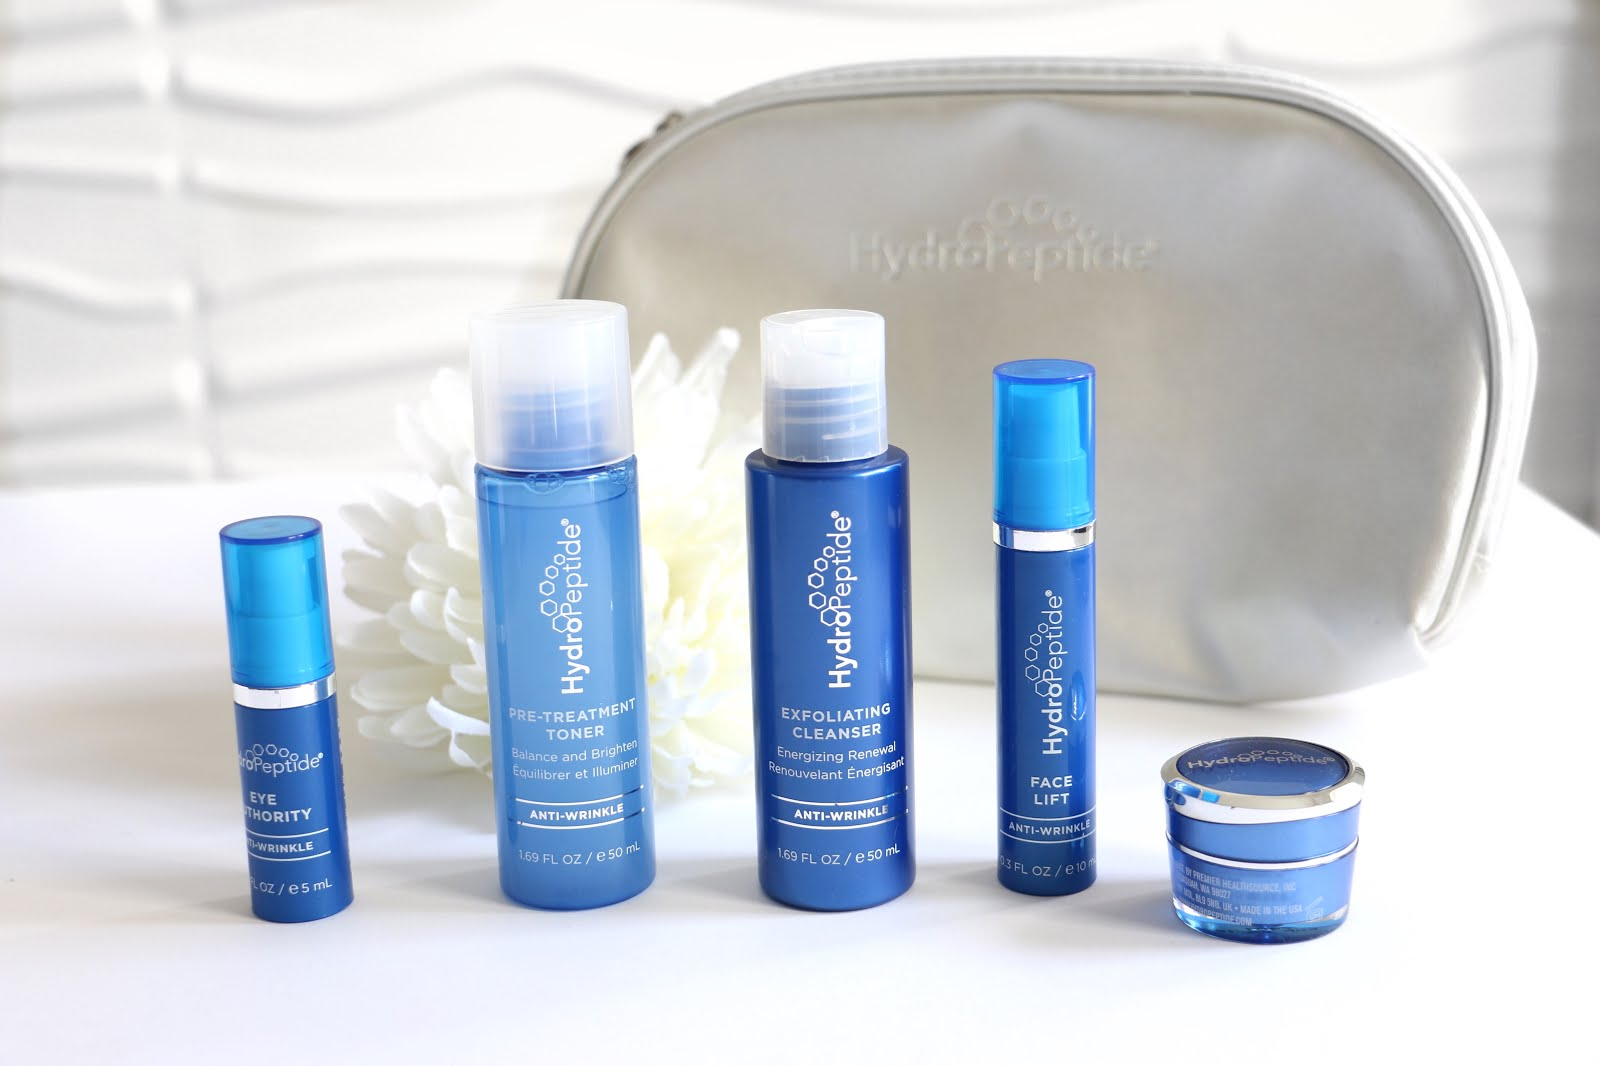 HydroPeptide-On-the-Go-Glow-Travel-Set-Vivi-Brizuela-PinkOrchidMakeup